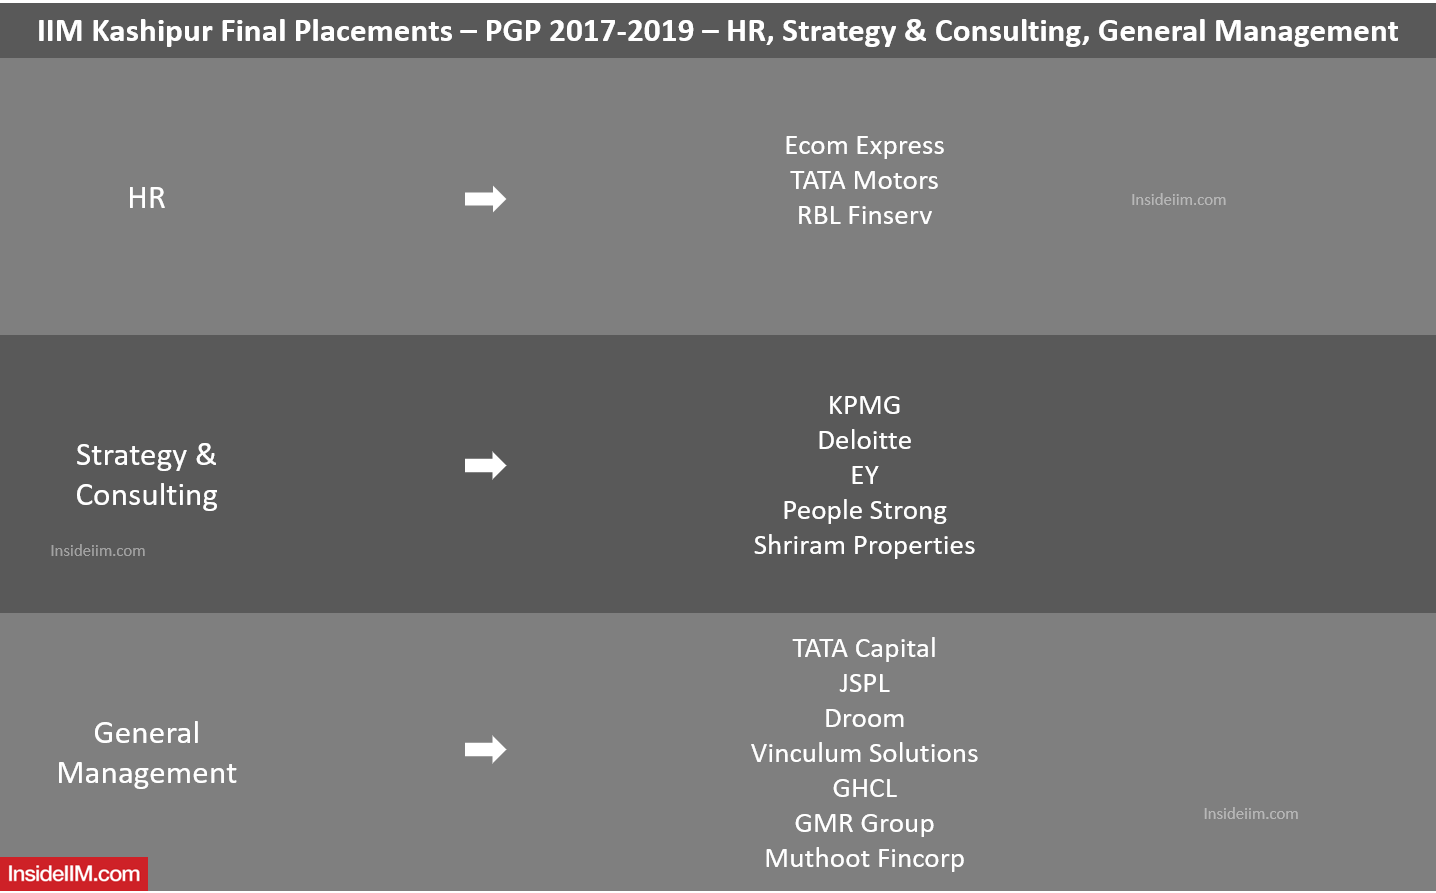 IIM Kashipur Placements Report 2019 - Companies: HR, Strategy & Consulting, General Management